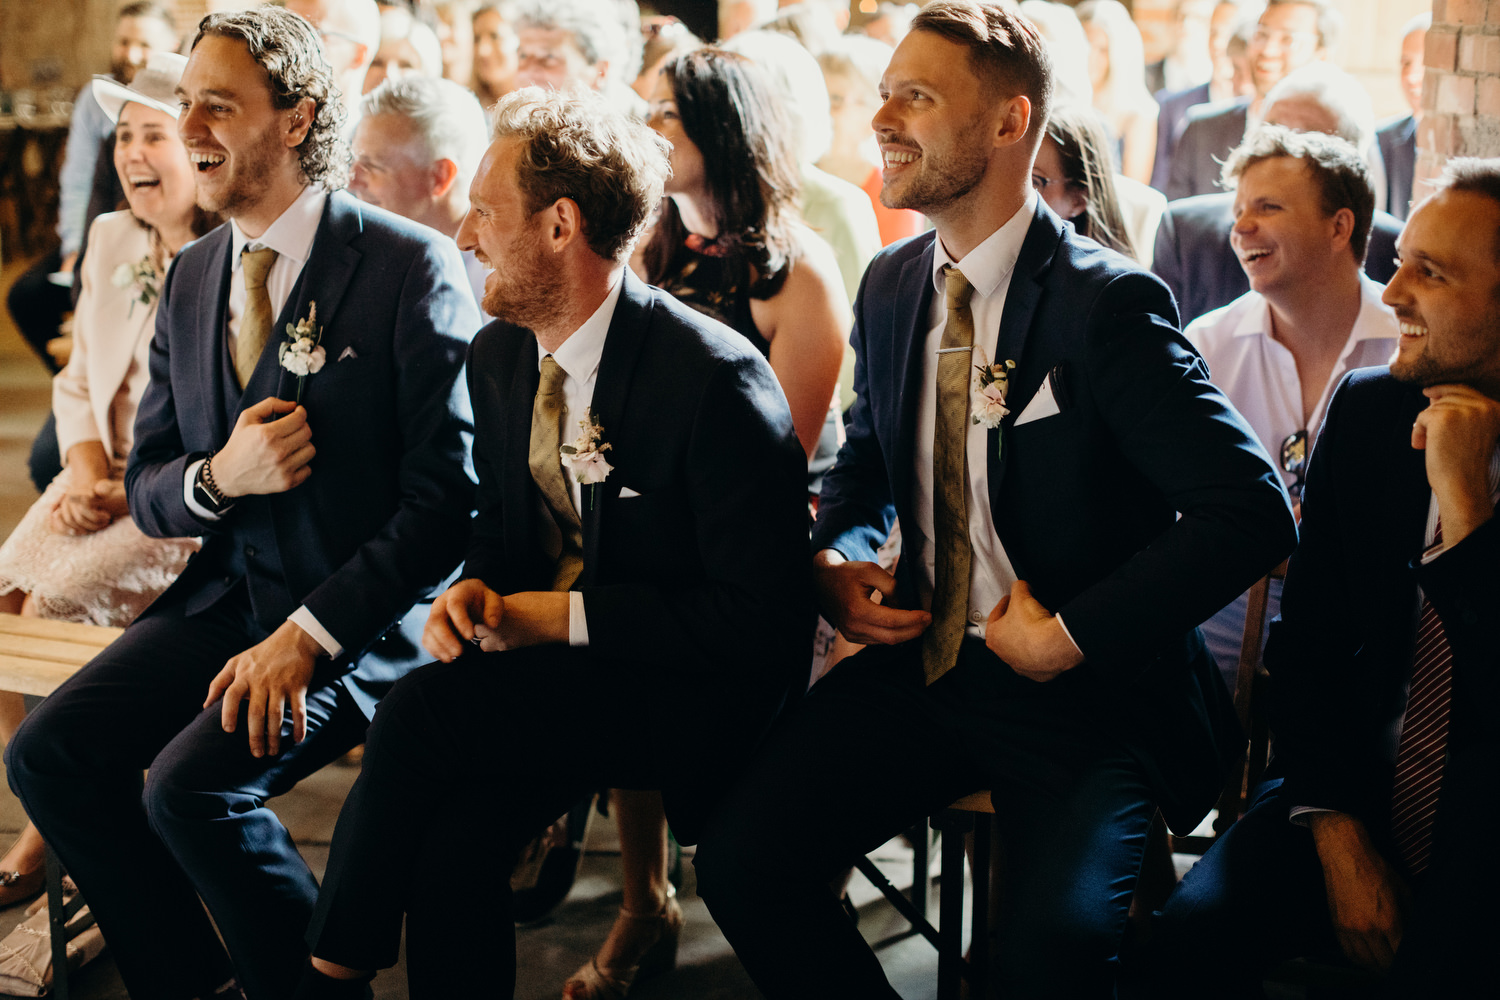 ushers laughing during ceremony